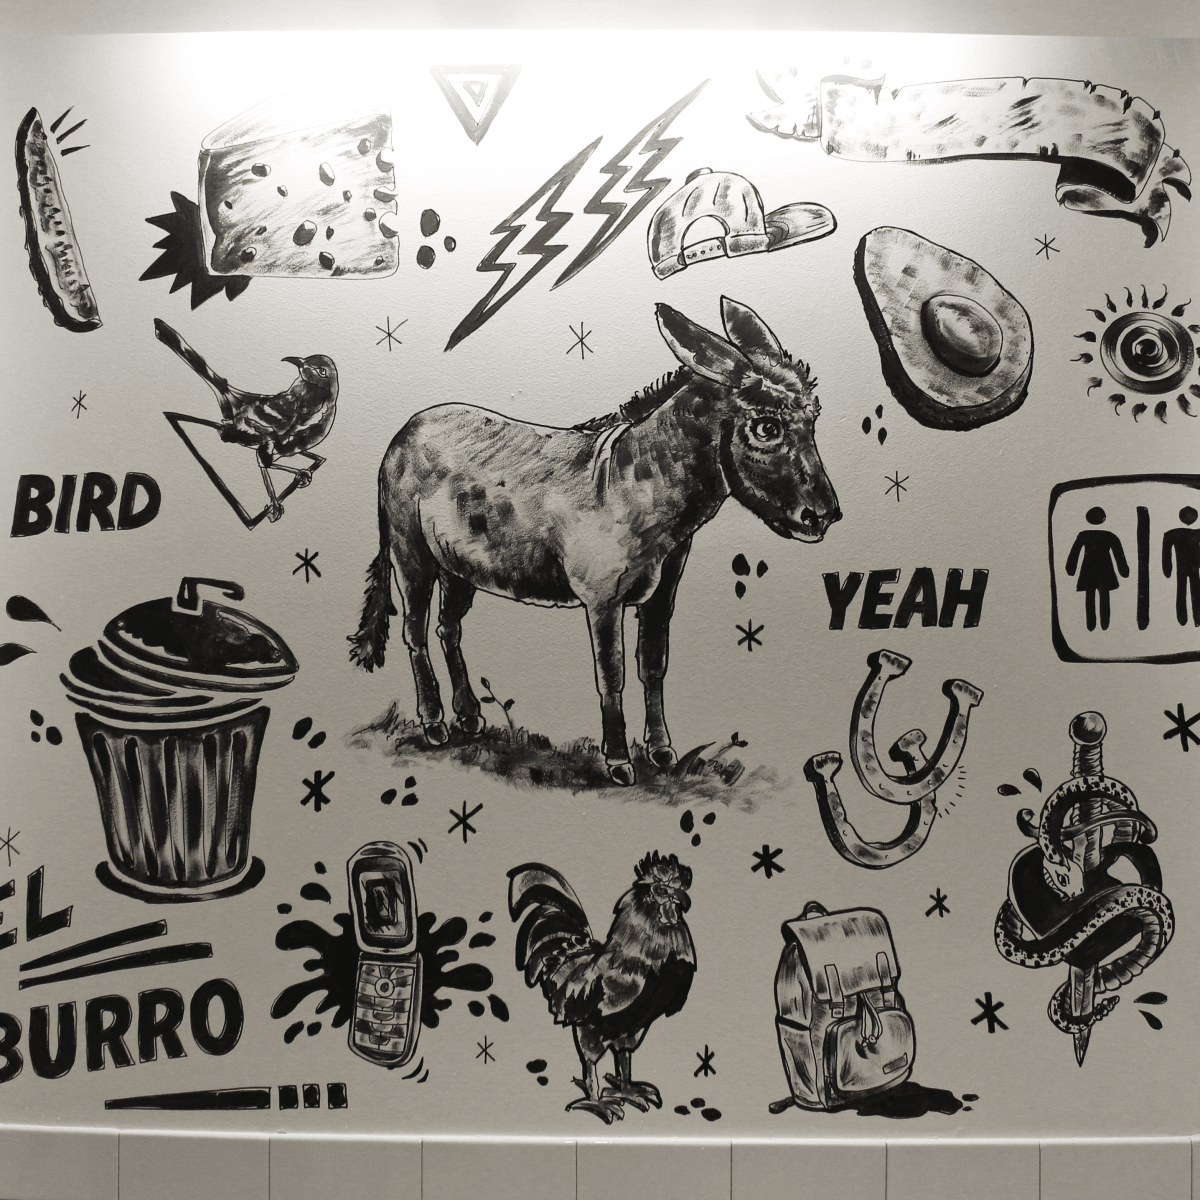 El Burro Tex Mex and Bar restaurant bathroom